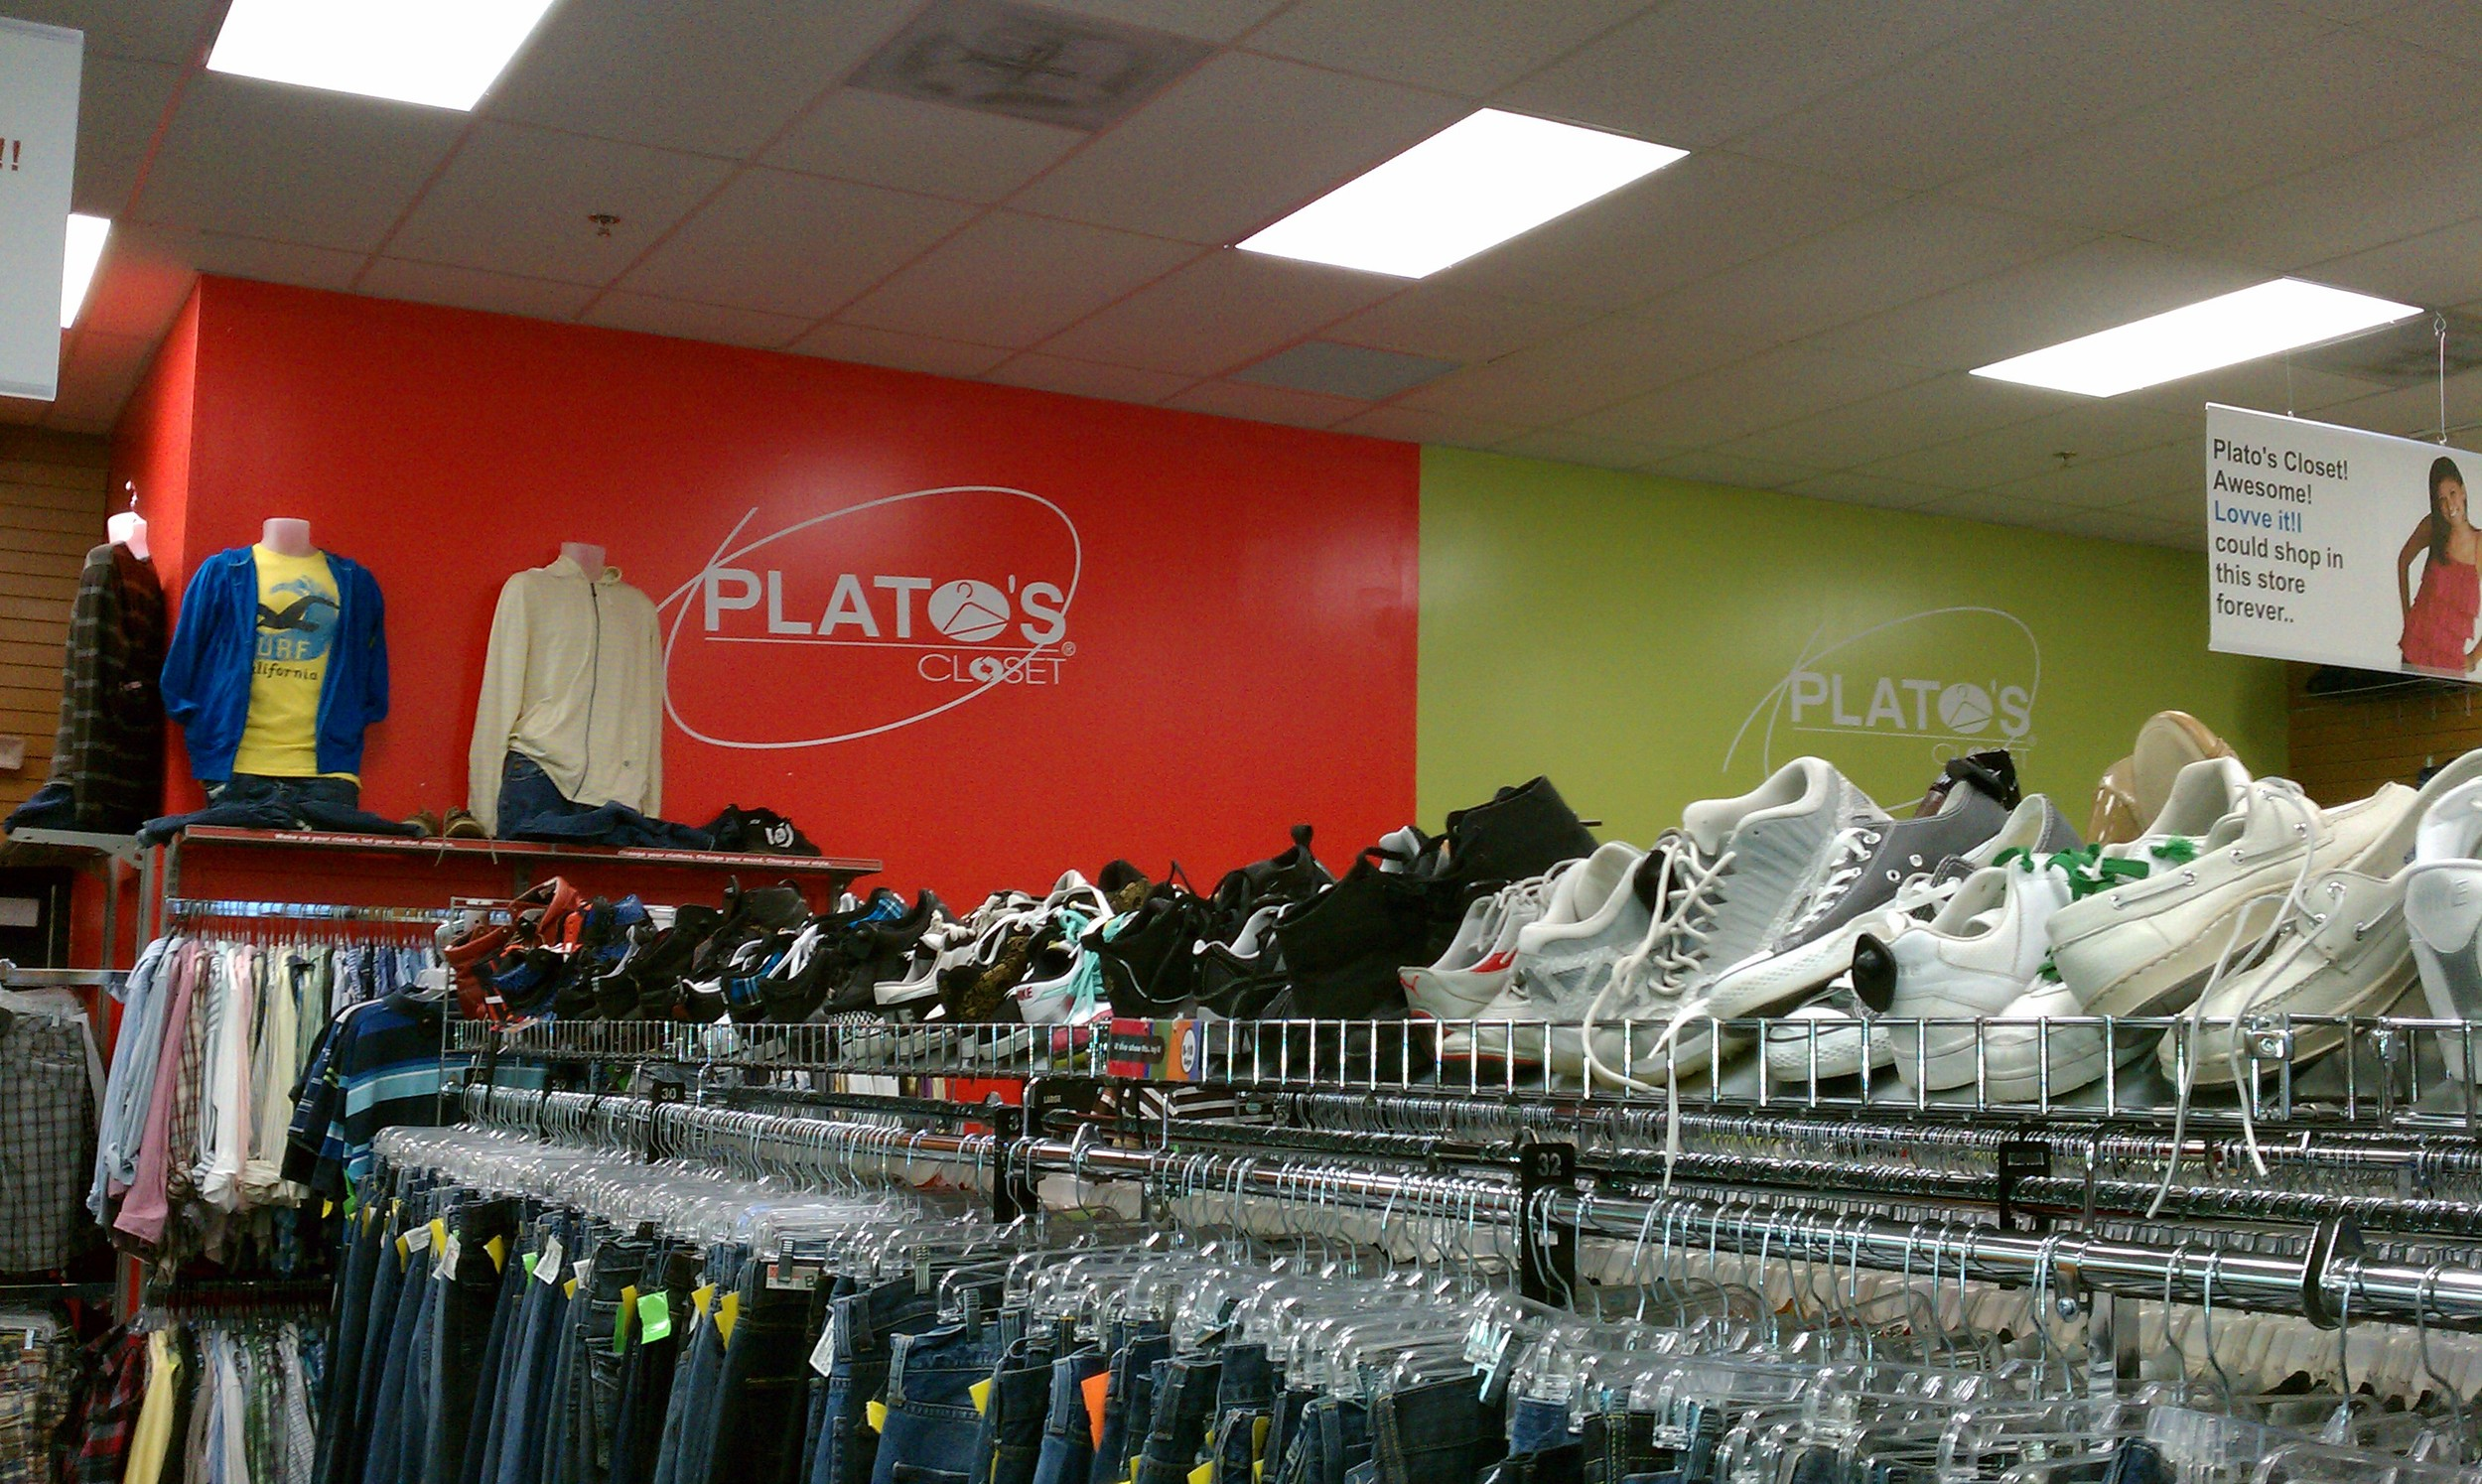 Plato's Closet, Jacksonville, FL   R&R Construction, INc.  Metal Framing Exterior Sheathing, Drywall, Acoustical Ceilings, Carpentry